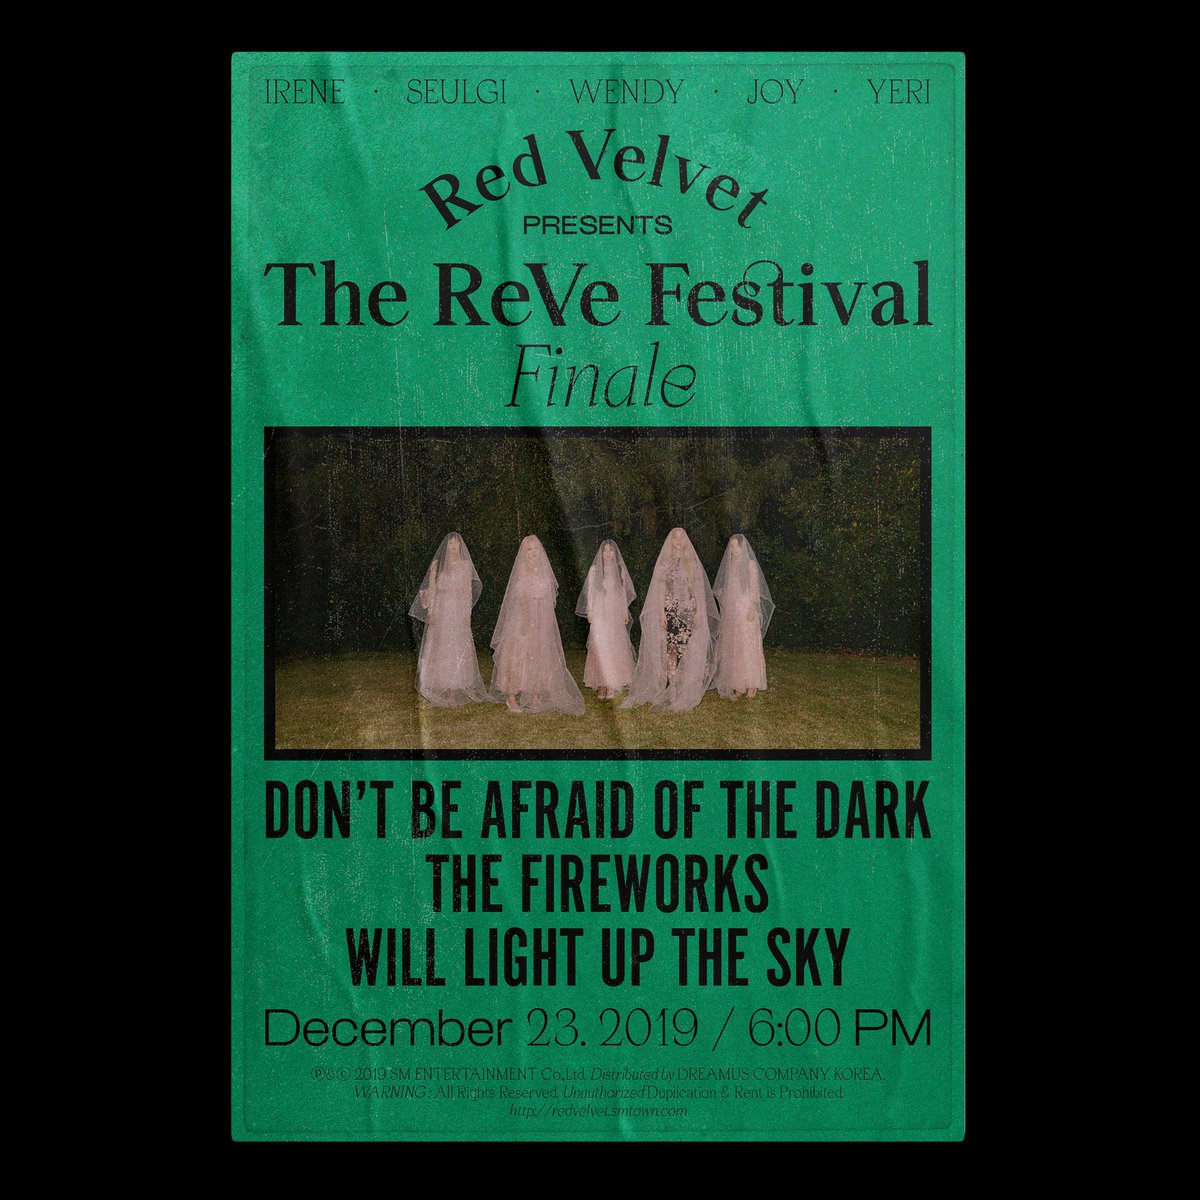 WOW! Red Velvet brings Halloween to December with teaser photos for ['The ReVe Festival' Finale]  @RVsmtown  Comeback date: December 23  Bro the first pic is really creepy <br>http://pic.twitter.com/p2AZUhbwoZ